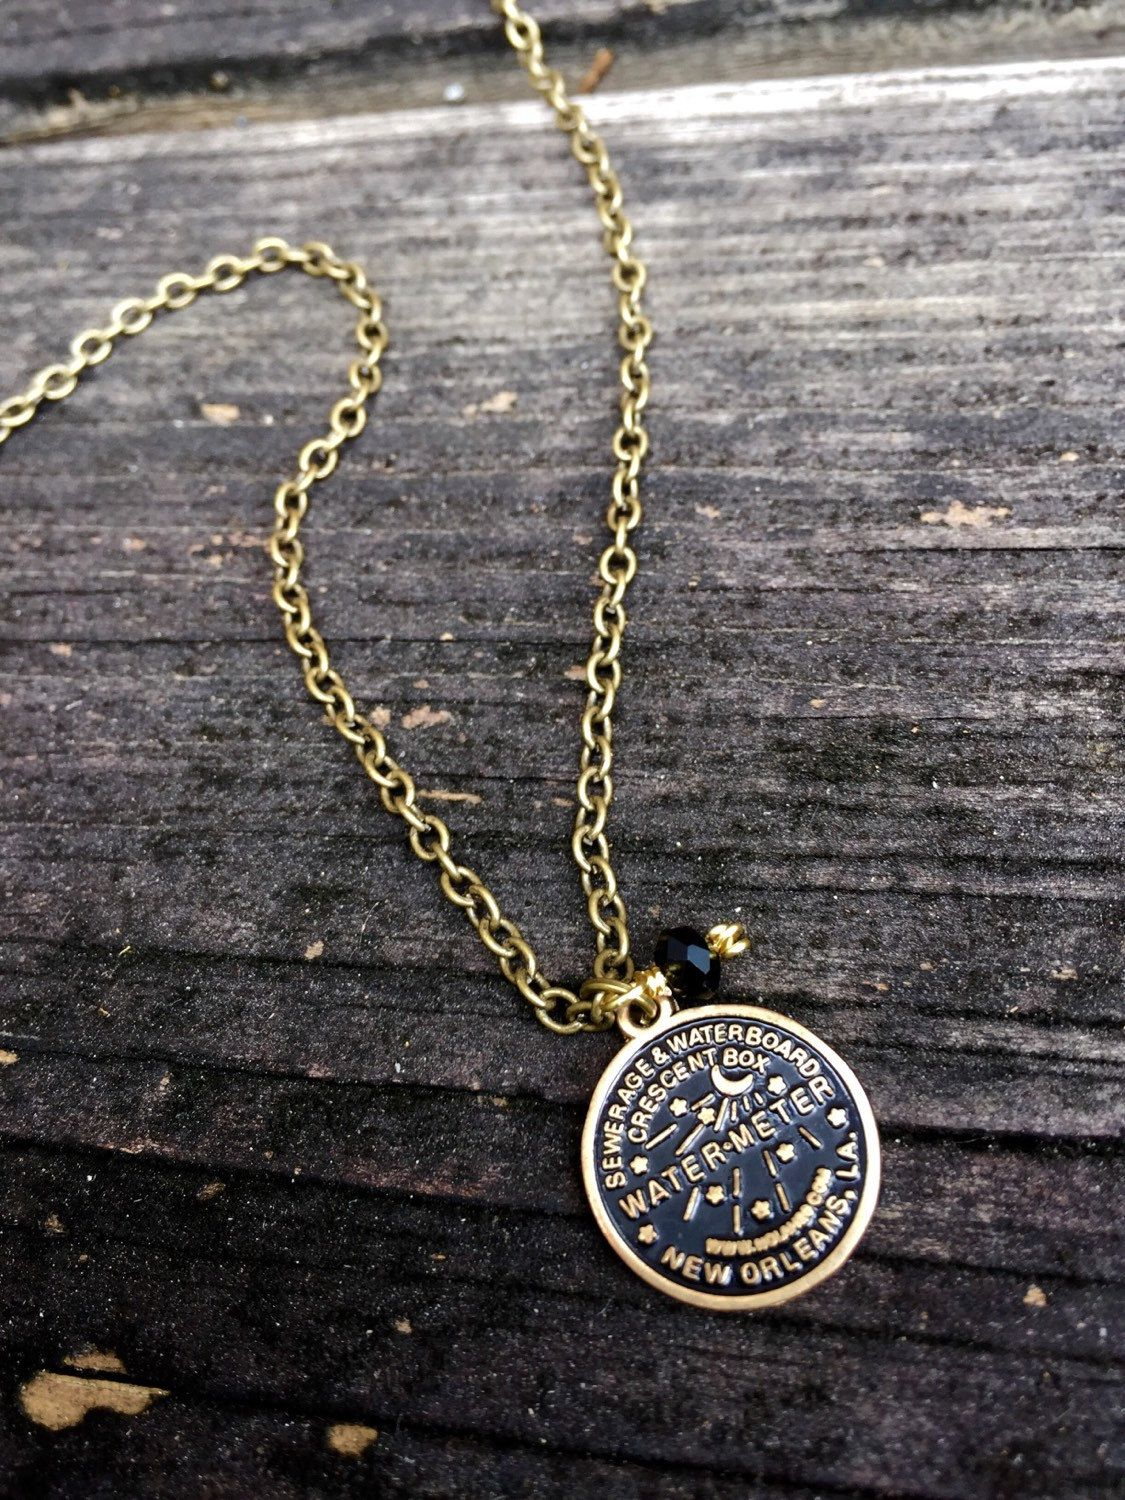 NOLA Watermeter Charm Necklace by ValoisDesigns on Etsy